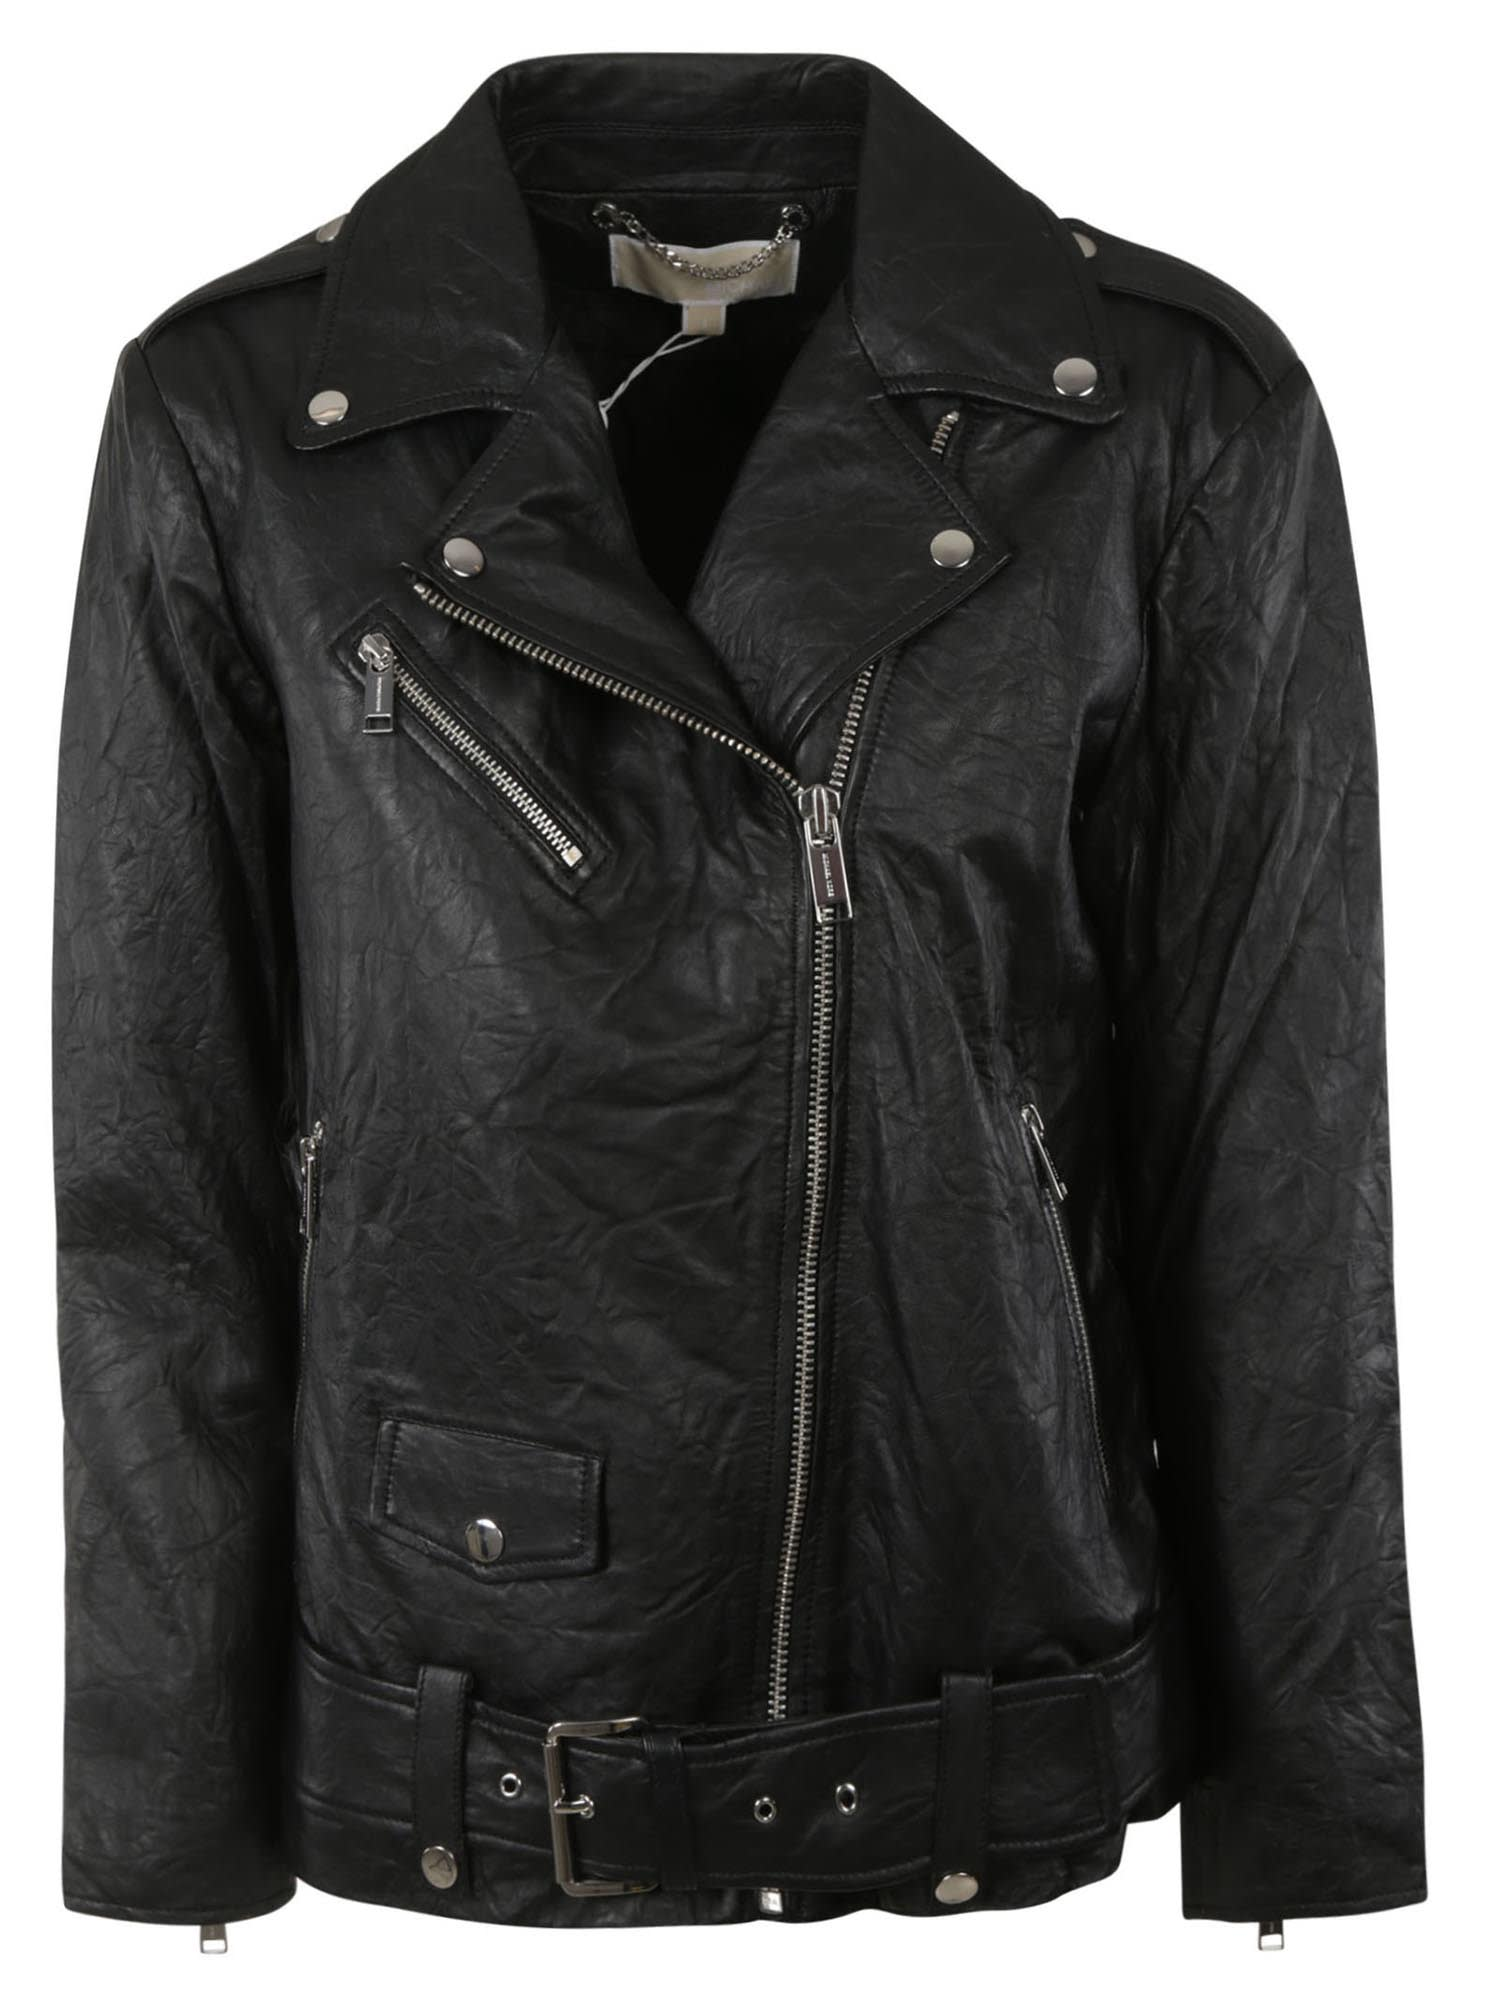 Michael Kors Zip-up Biker Jacket